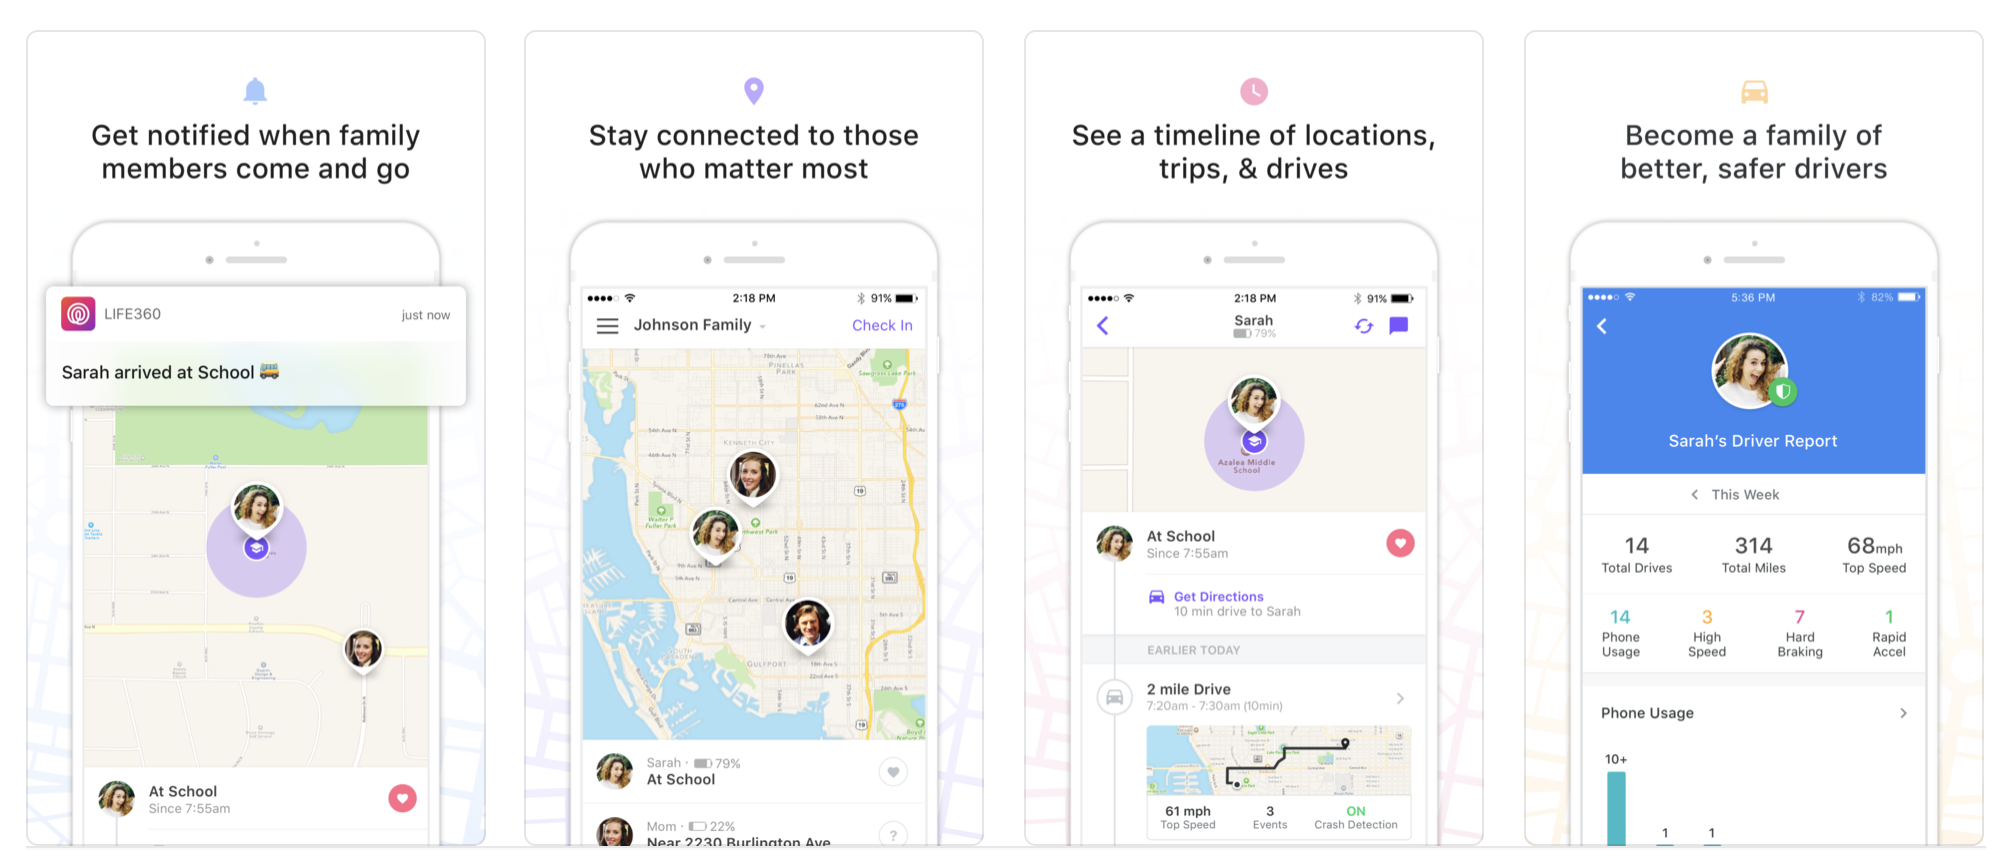 Life360 Mobile Interview Process - Life360 Engineering - Medium